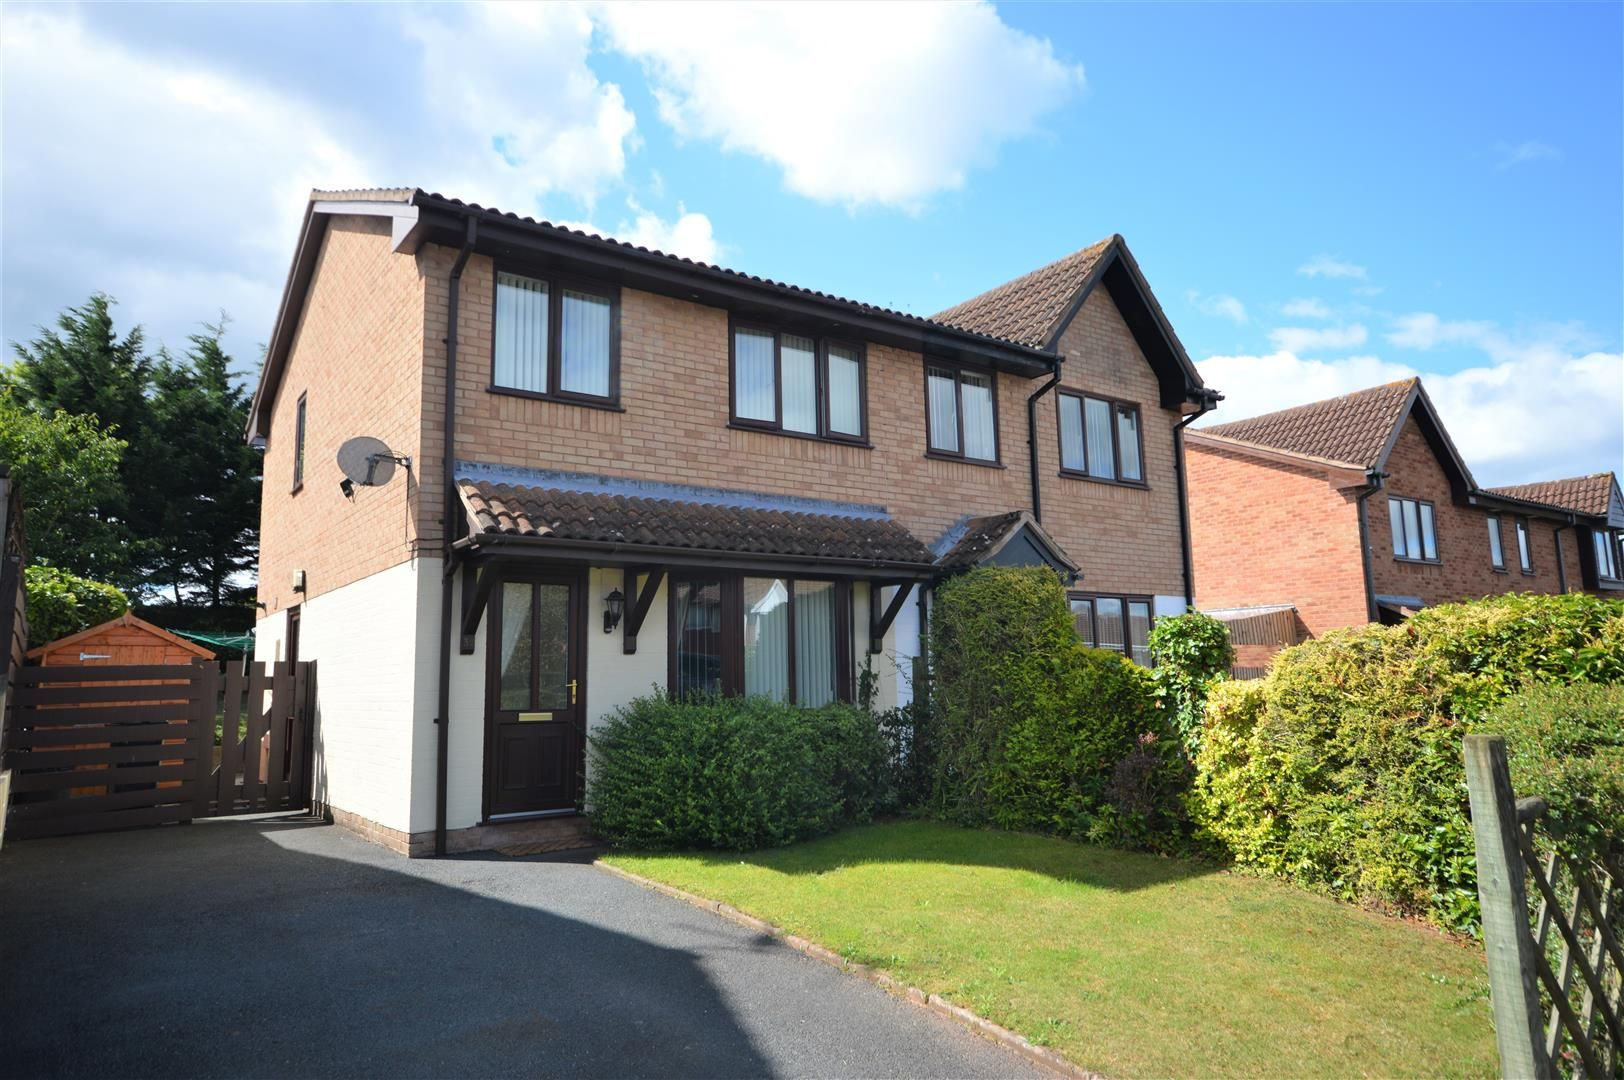 3 bed semi-detached for sale in Leominster 1